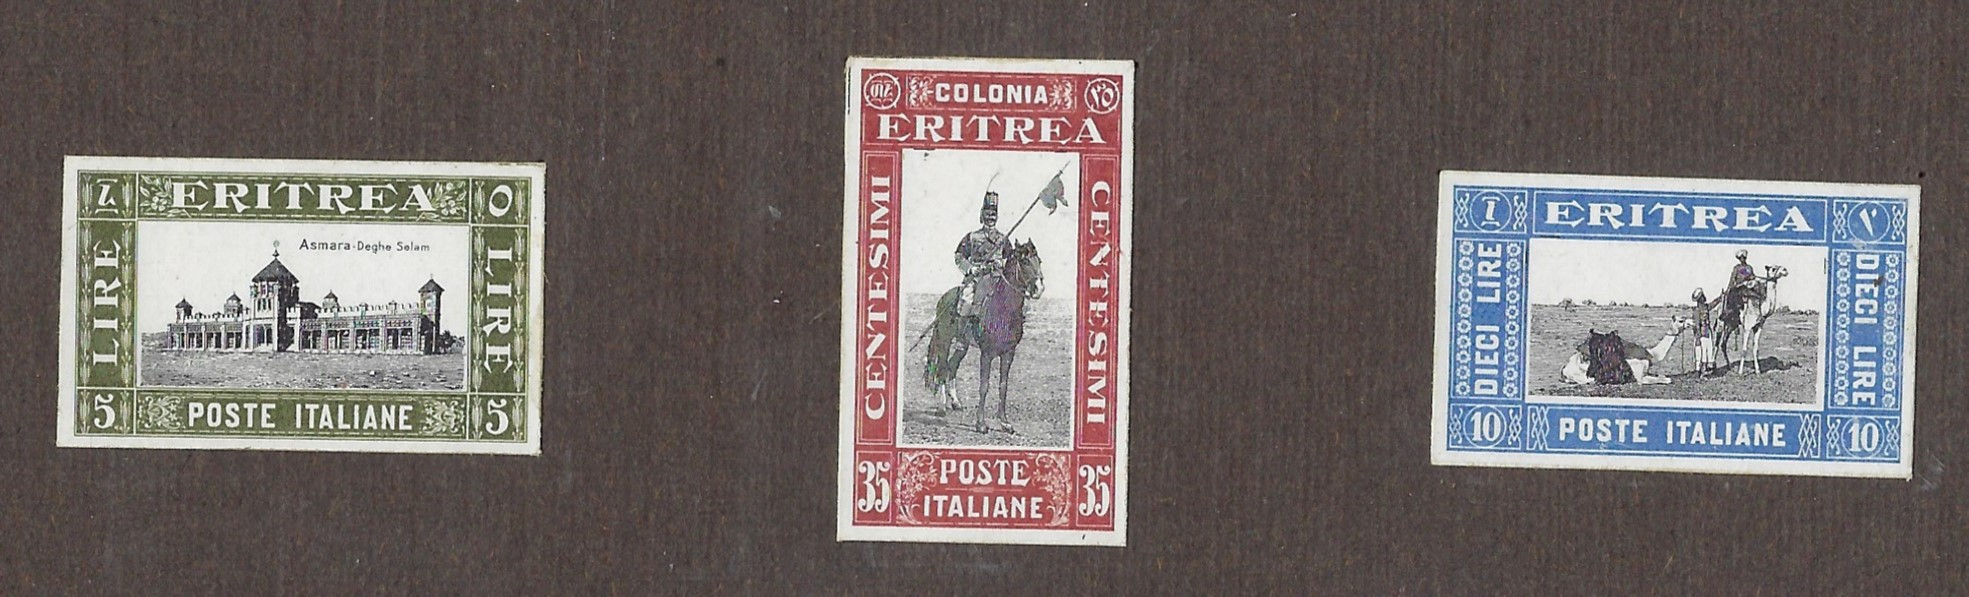 Italian Colonies (Eritrea) 1930 Soggetti africani group of three imperforated proofs affixed to thick card with 35c. Lancer, 5L. Asmara Parliament and 10L. Camels.